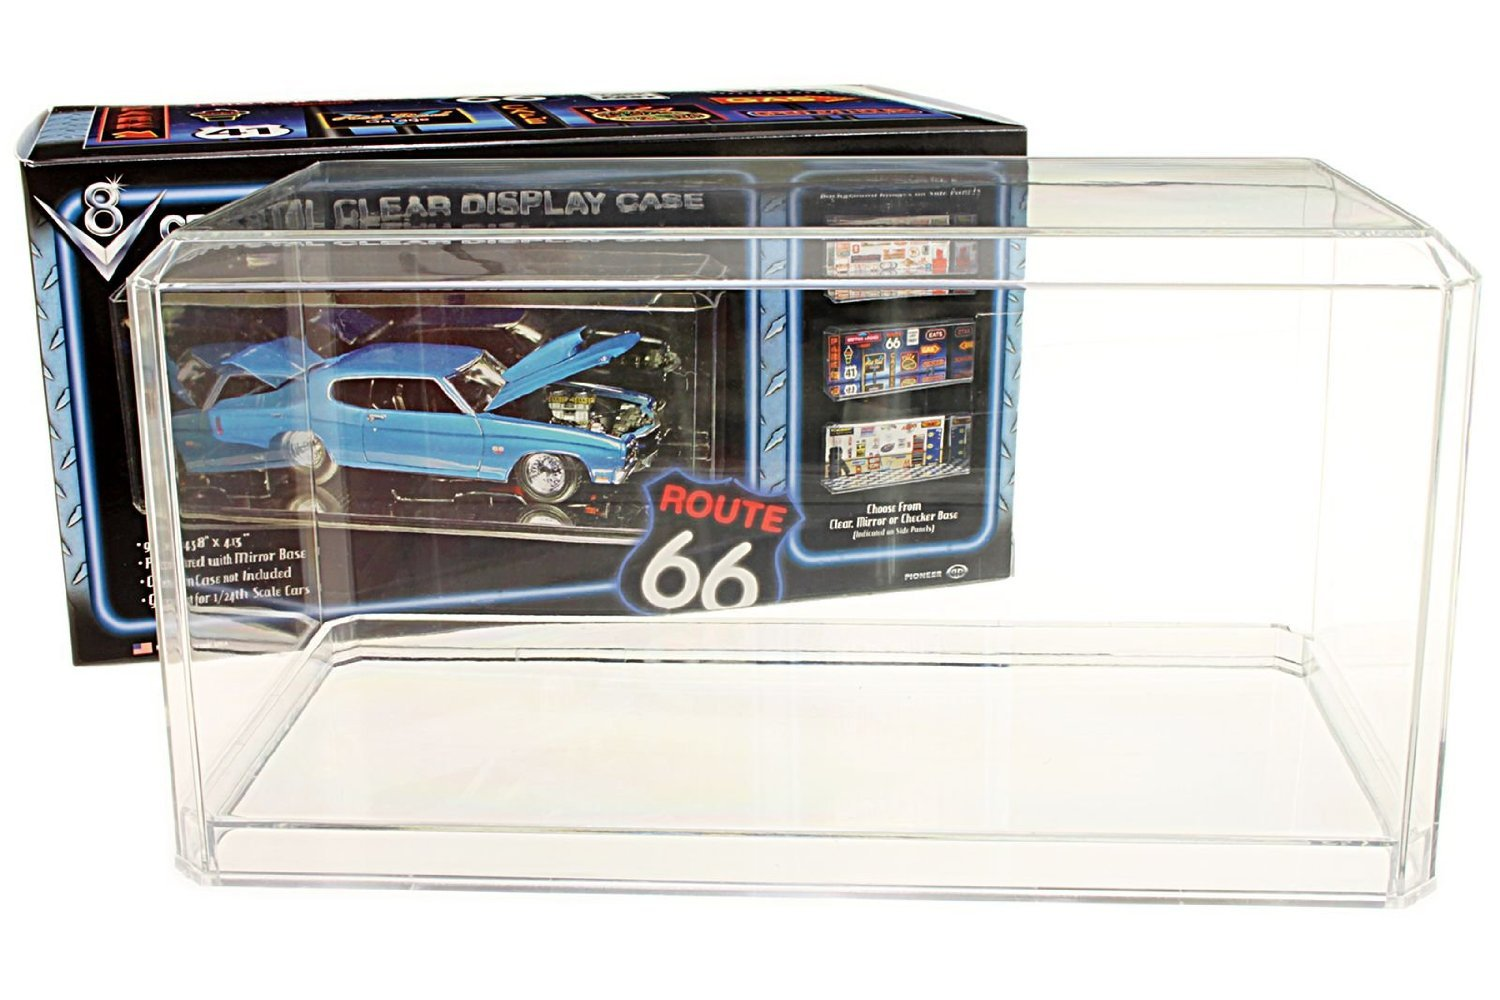 1/24 Scale Die Cast Display Case Pioneer Plastics Inc